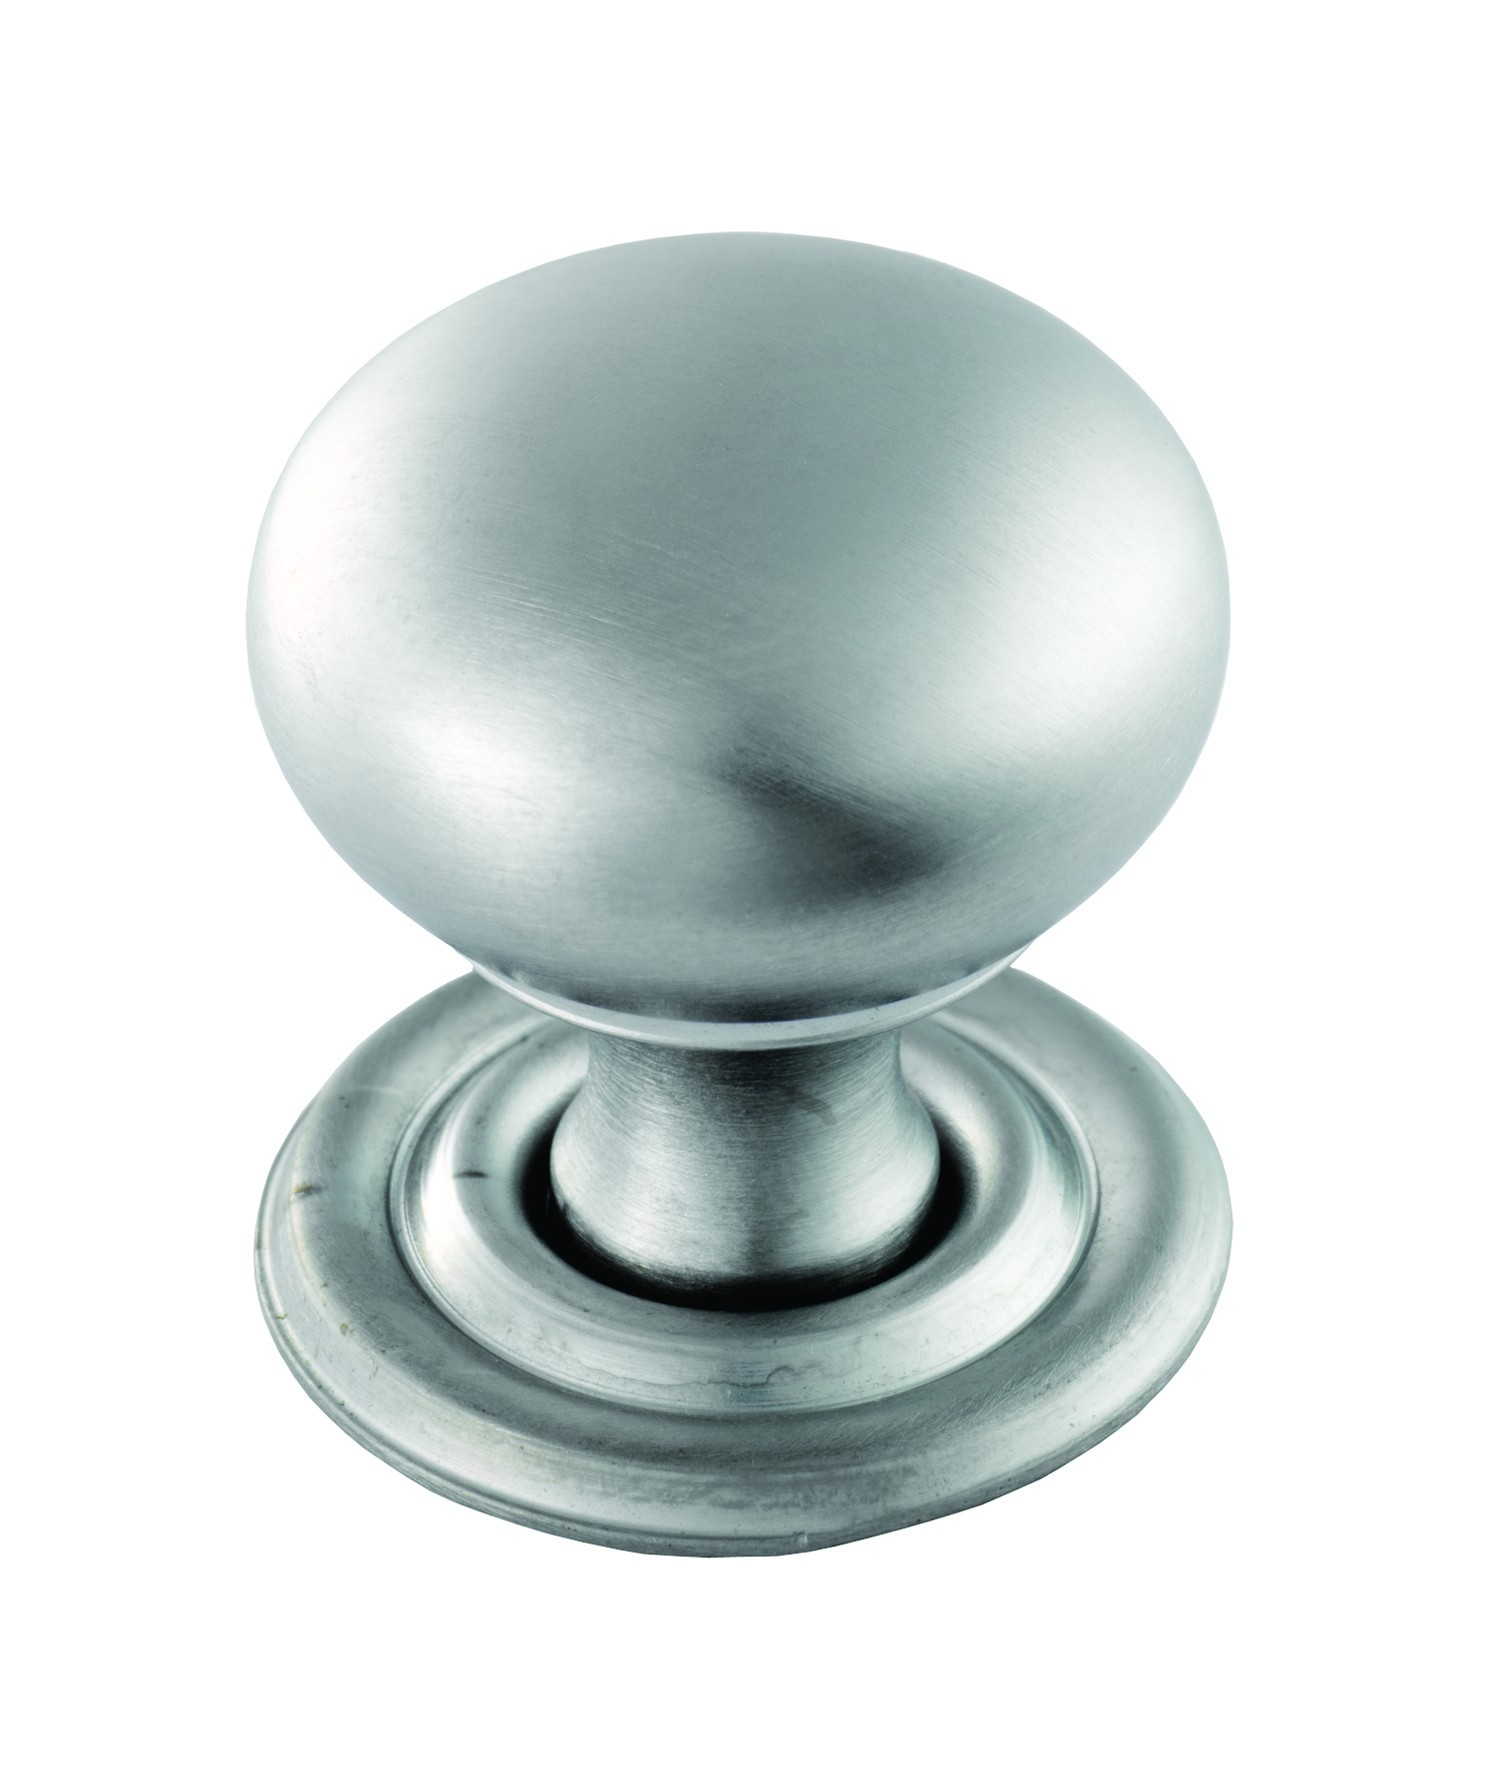 Hollow victorian knob 32mm diameter satin chrome